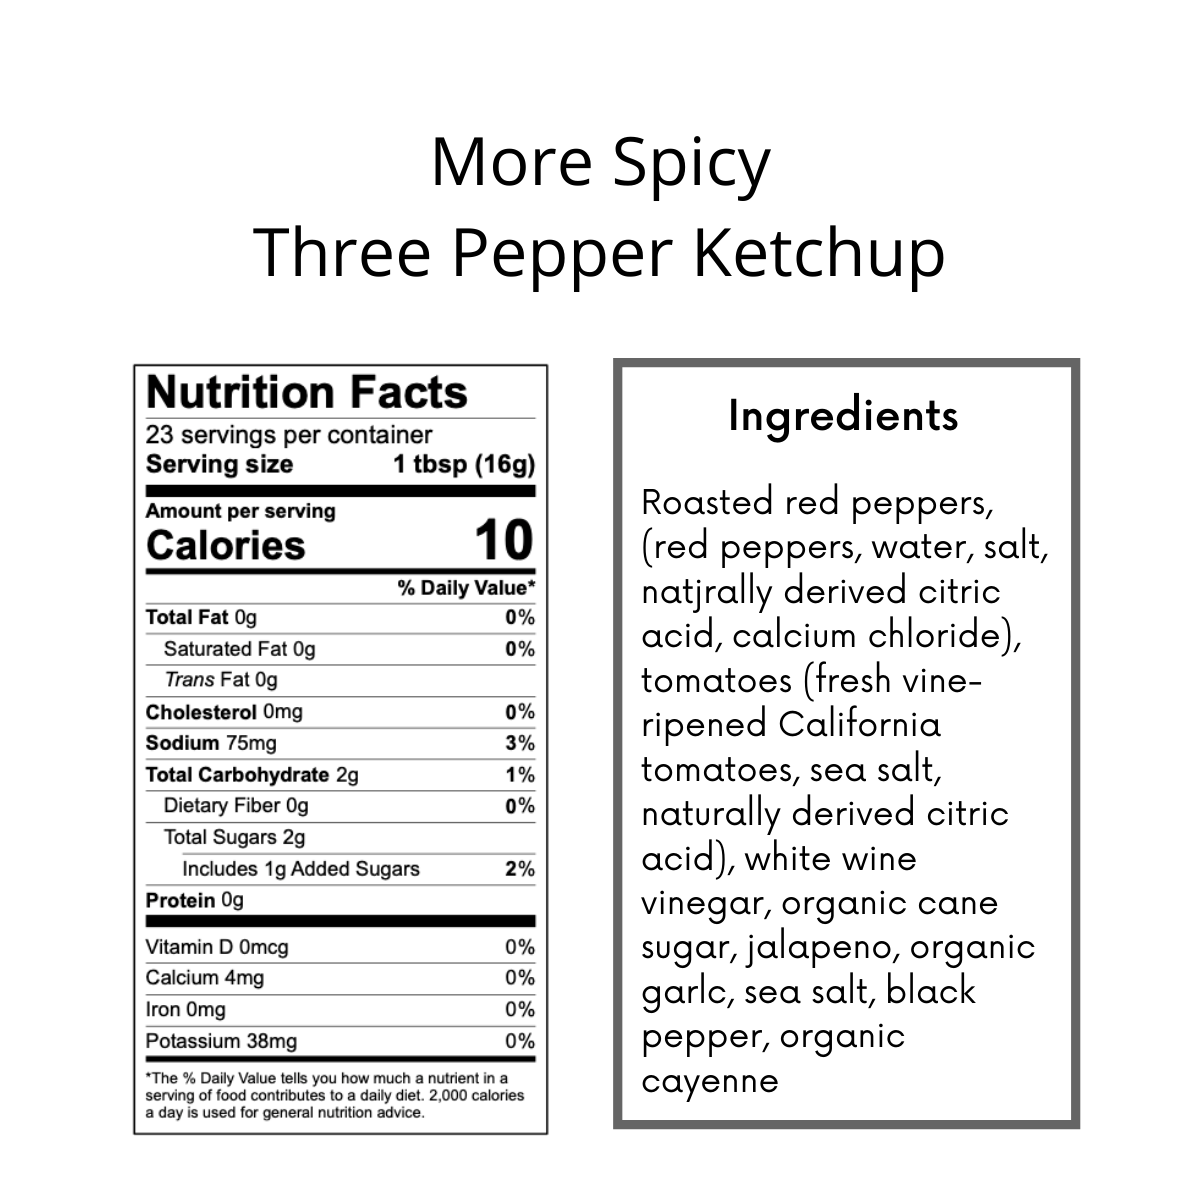 More Spicy Three Pepper Ketchup